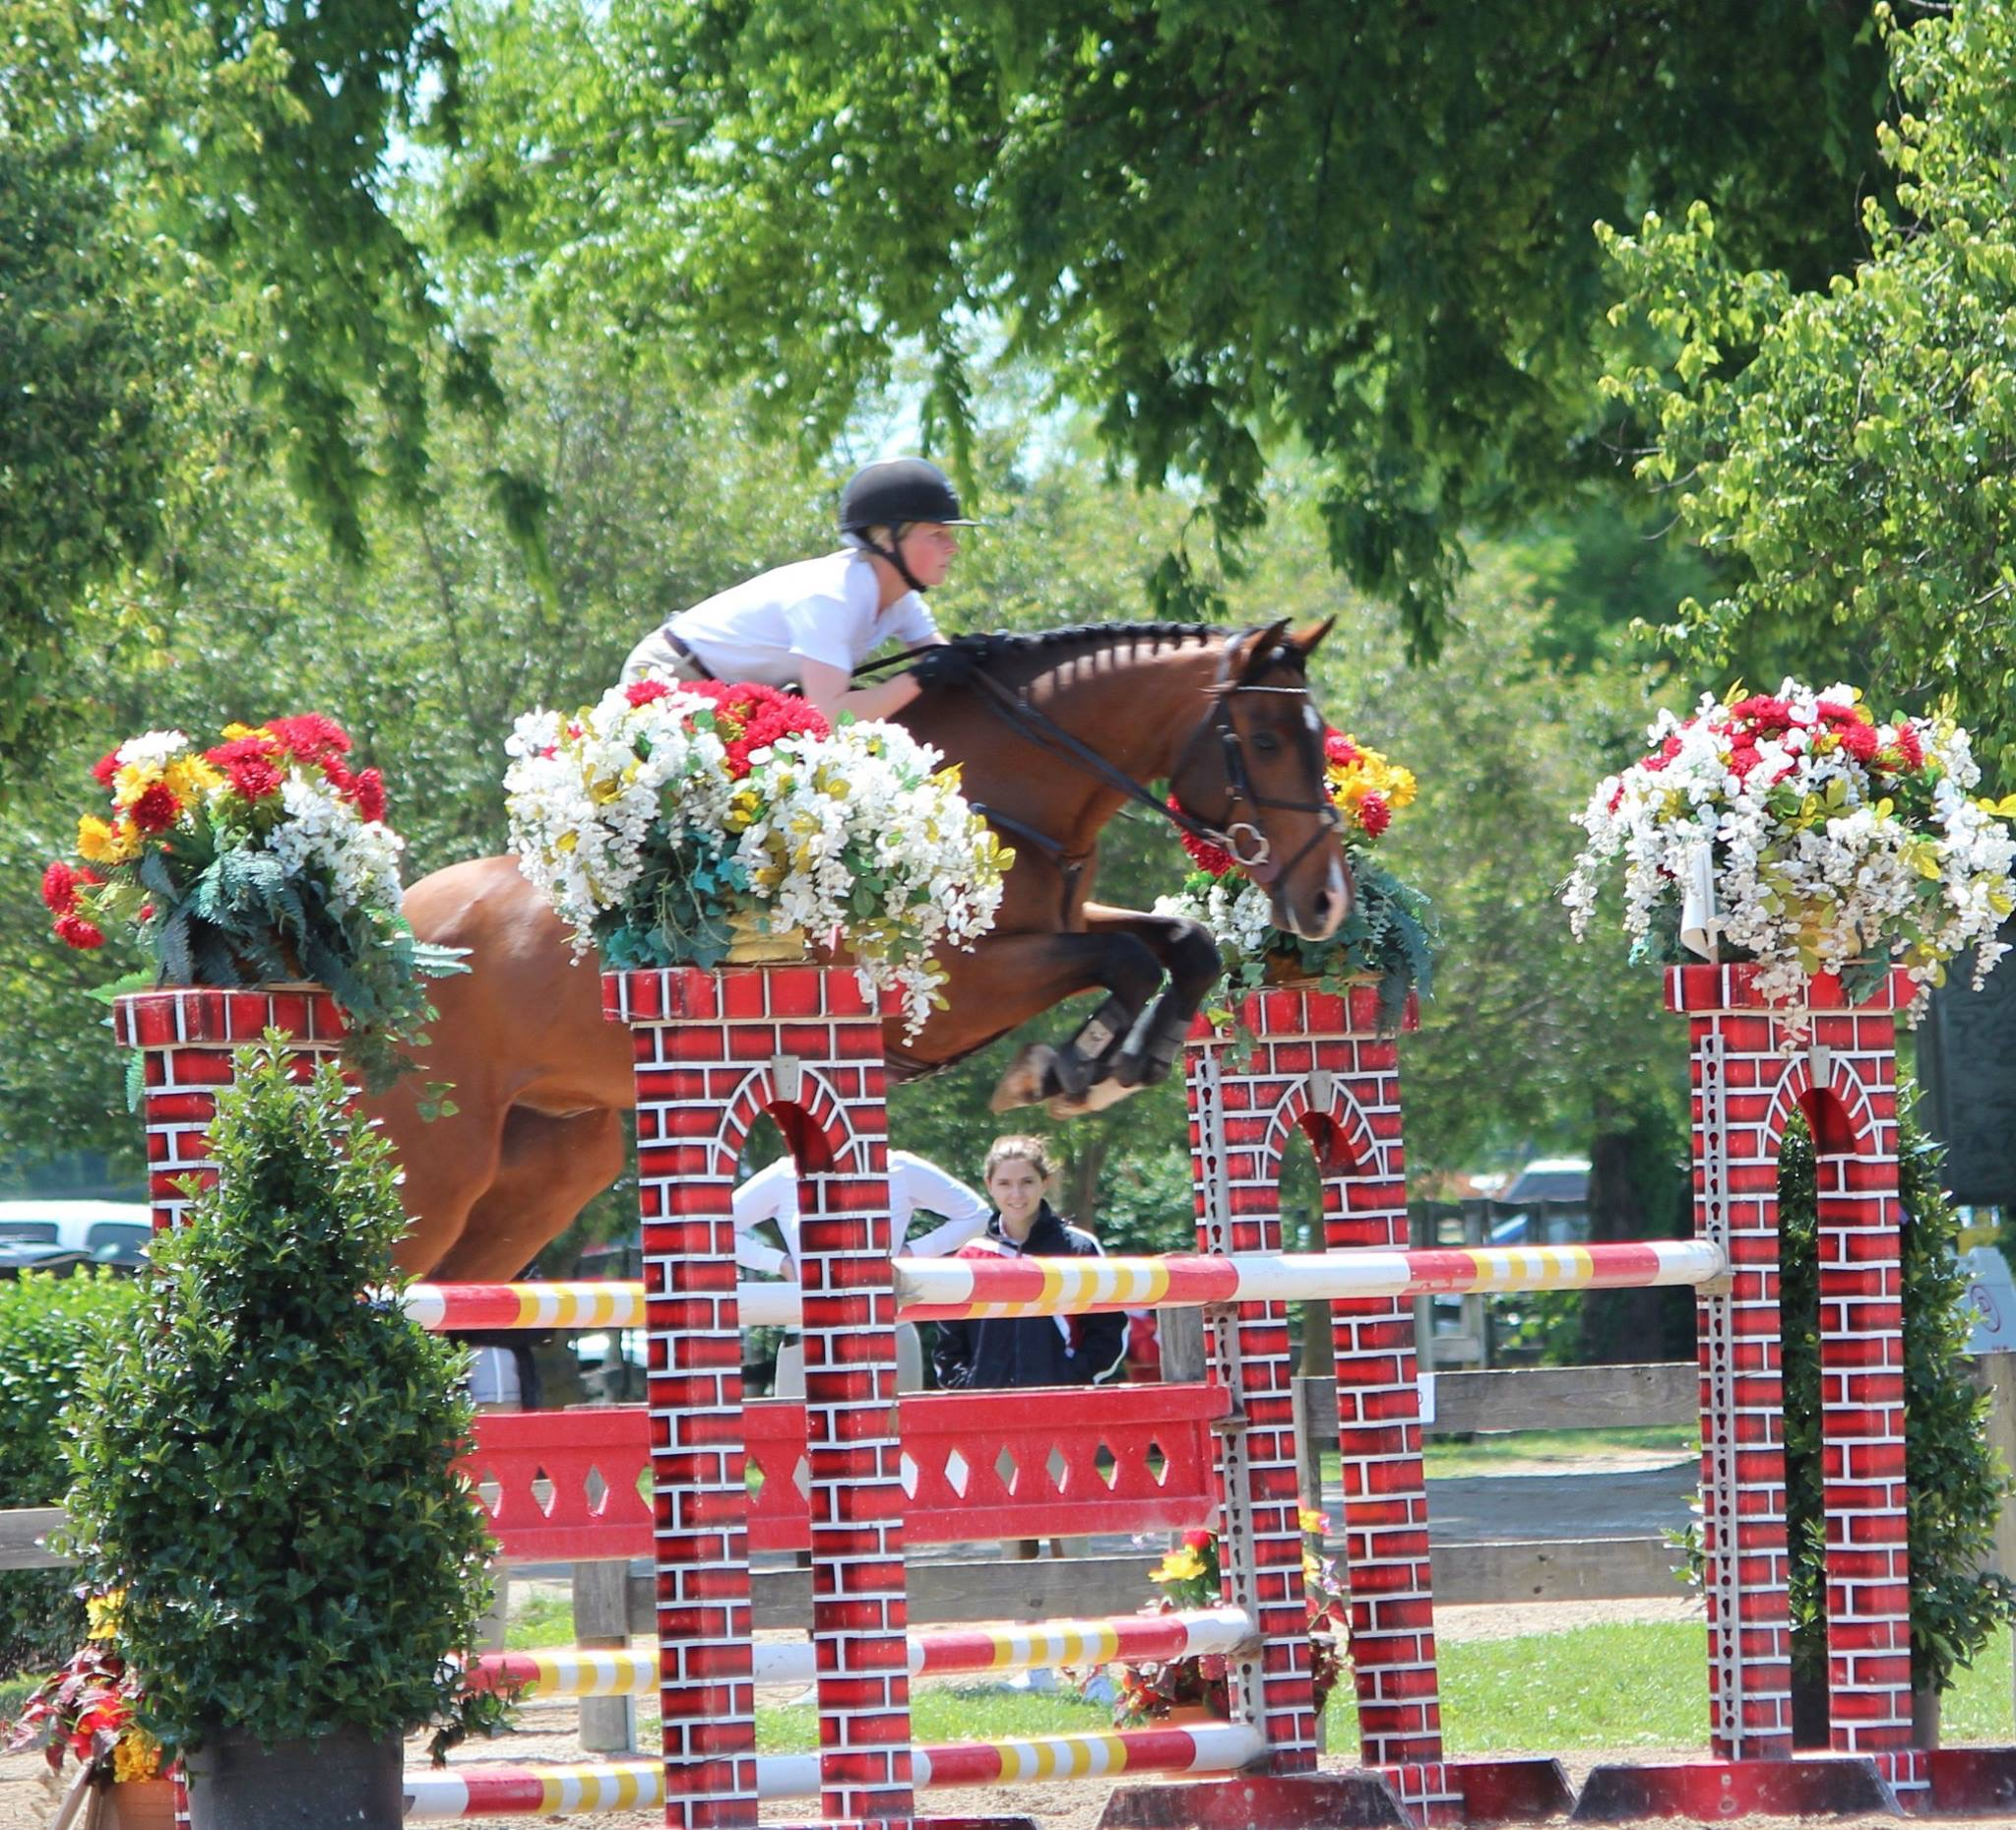 Charlie TFH (Corlando/Escudo II/Rebel Z) Ridden in Picture by Lucy Hart